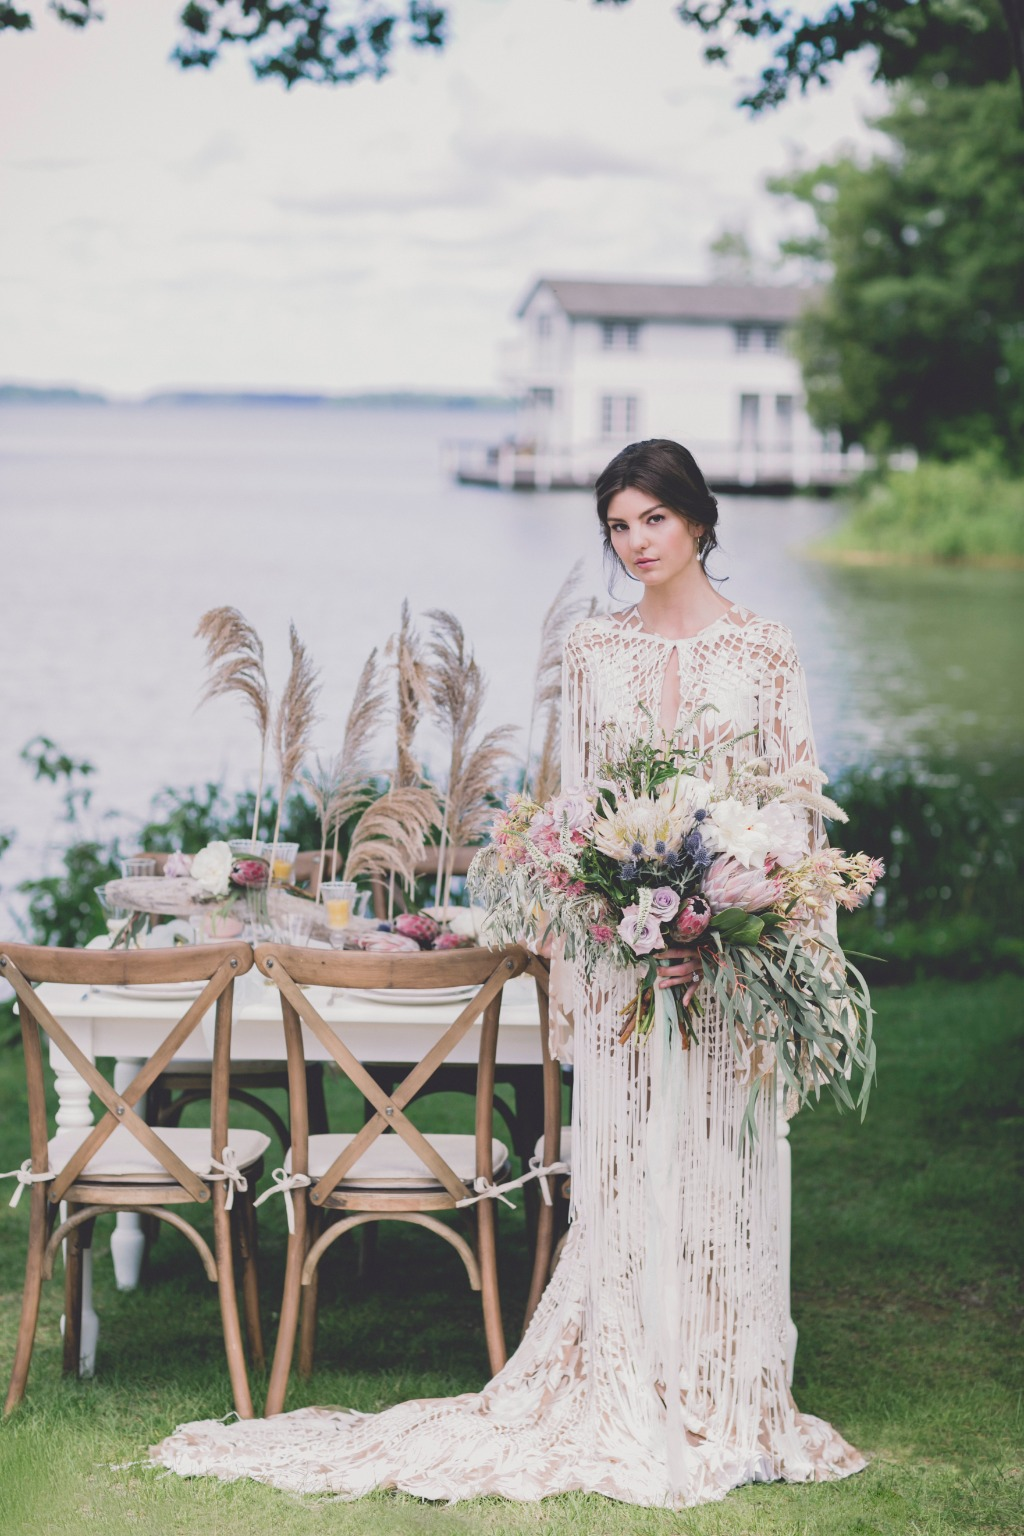 When you hear the term dream wedding, this bridal look and table setting certainly fits the bill! All the elements of nature that